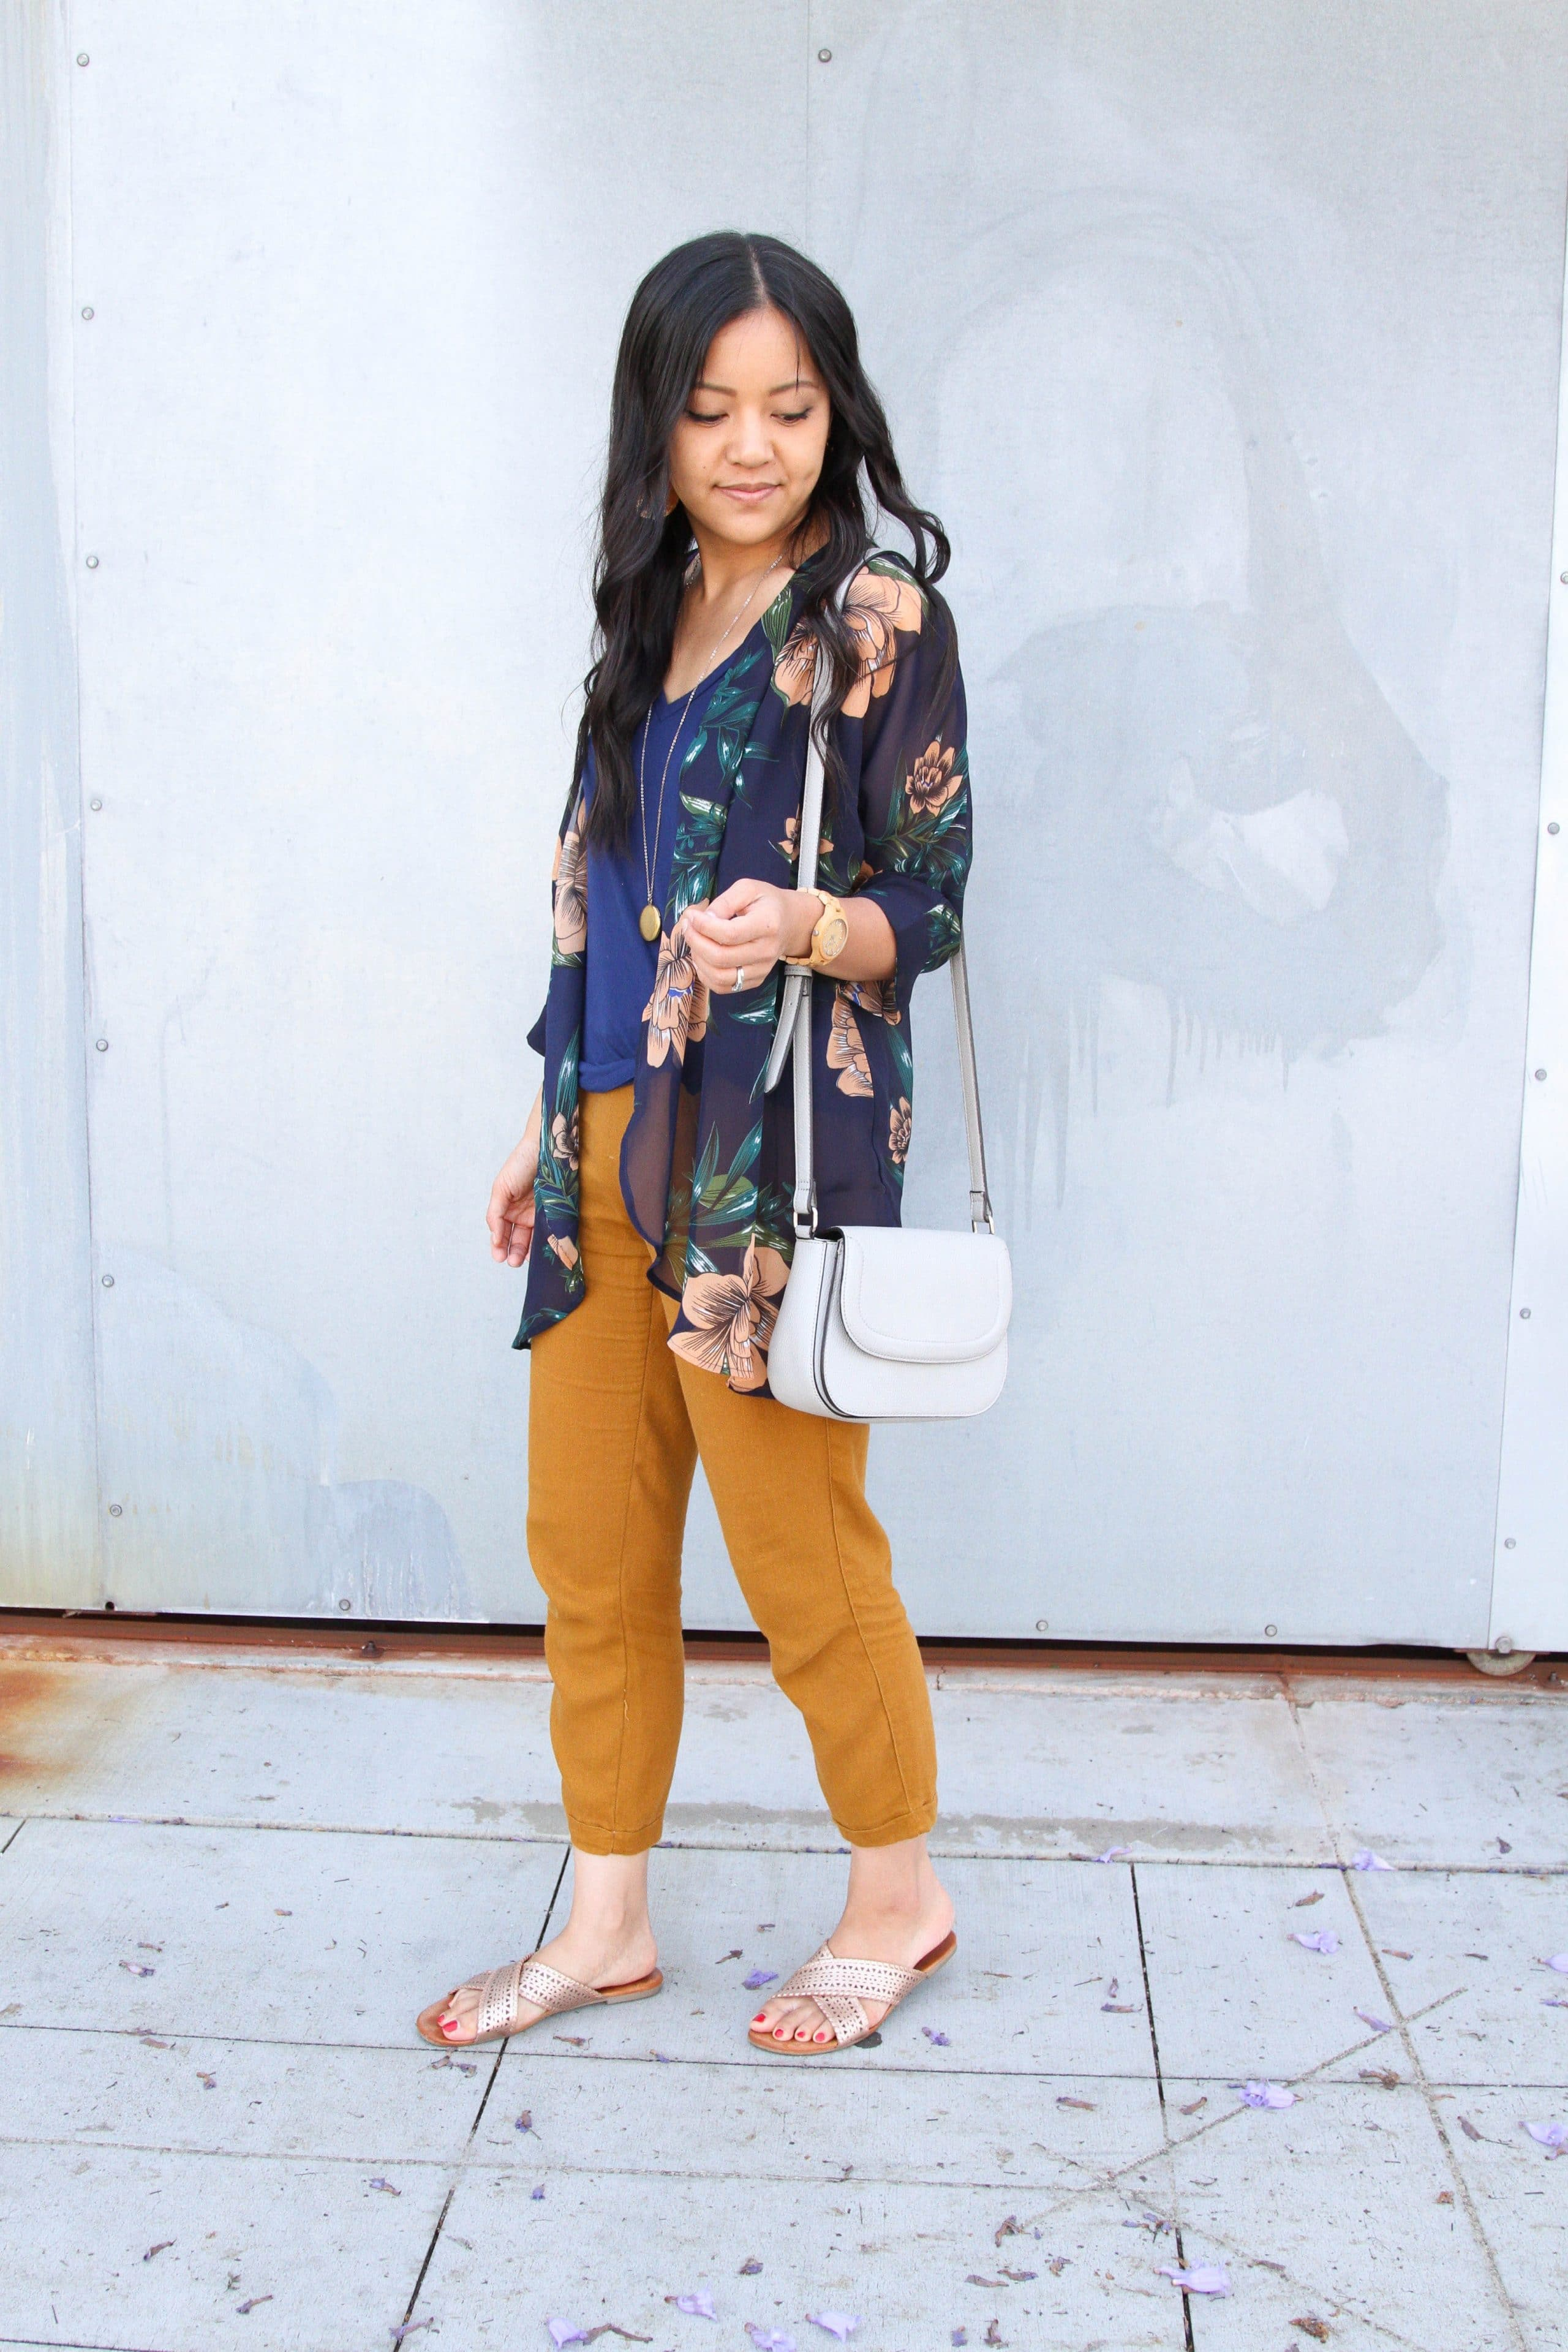 navy top + mustard yellow linen pants + navy floral wrap + metallic sandals